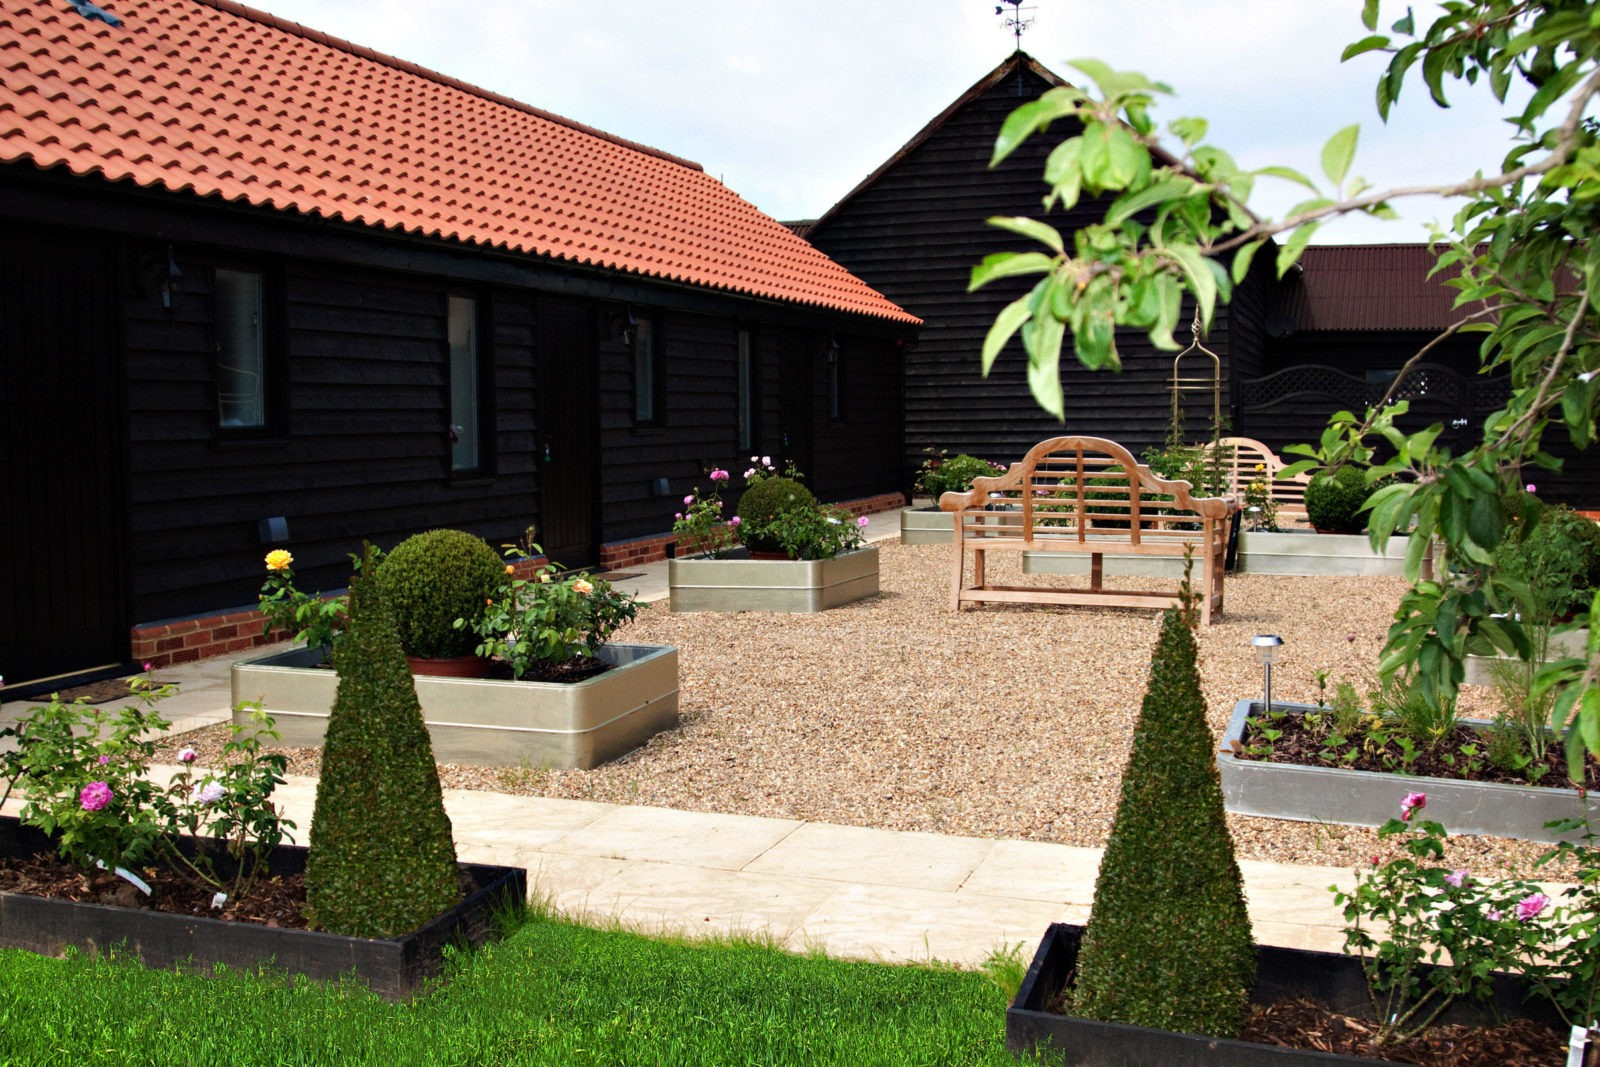 1 Mollett's Farm Courtyard